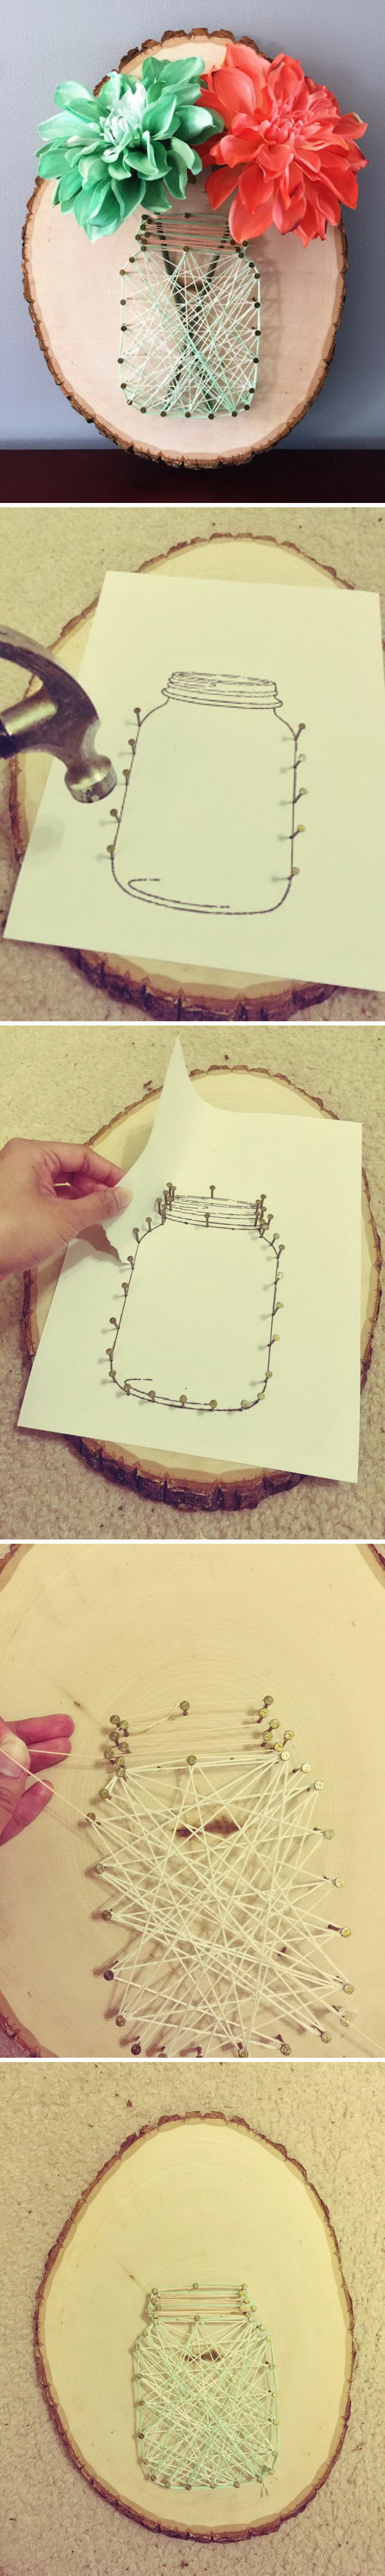 DIY Mason Jar String Art.